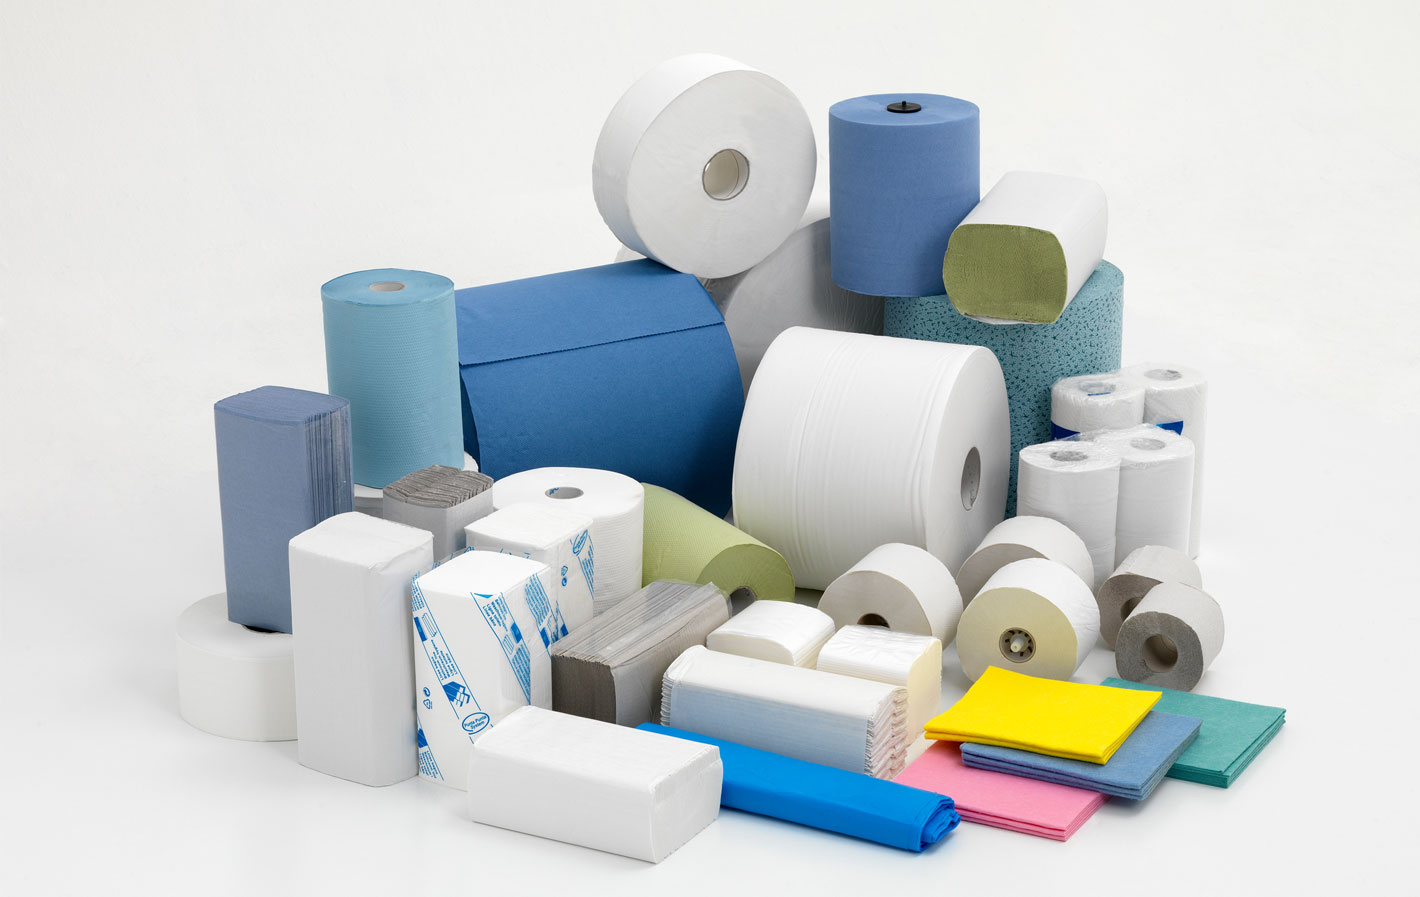 Wholesale Wiping Supplies & Paper Products for Home or Office